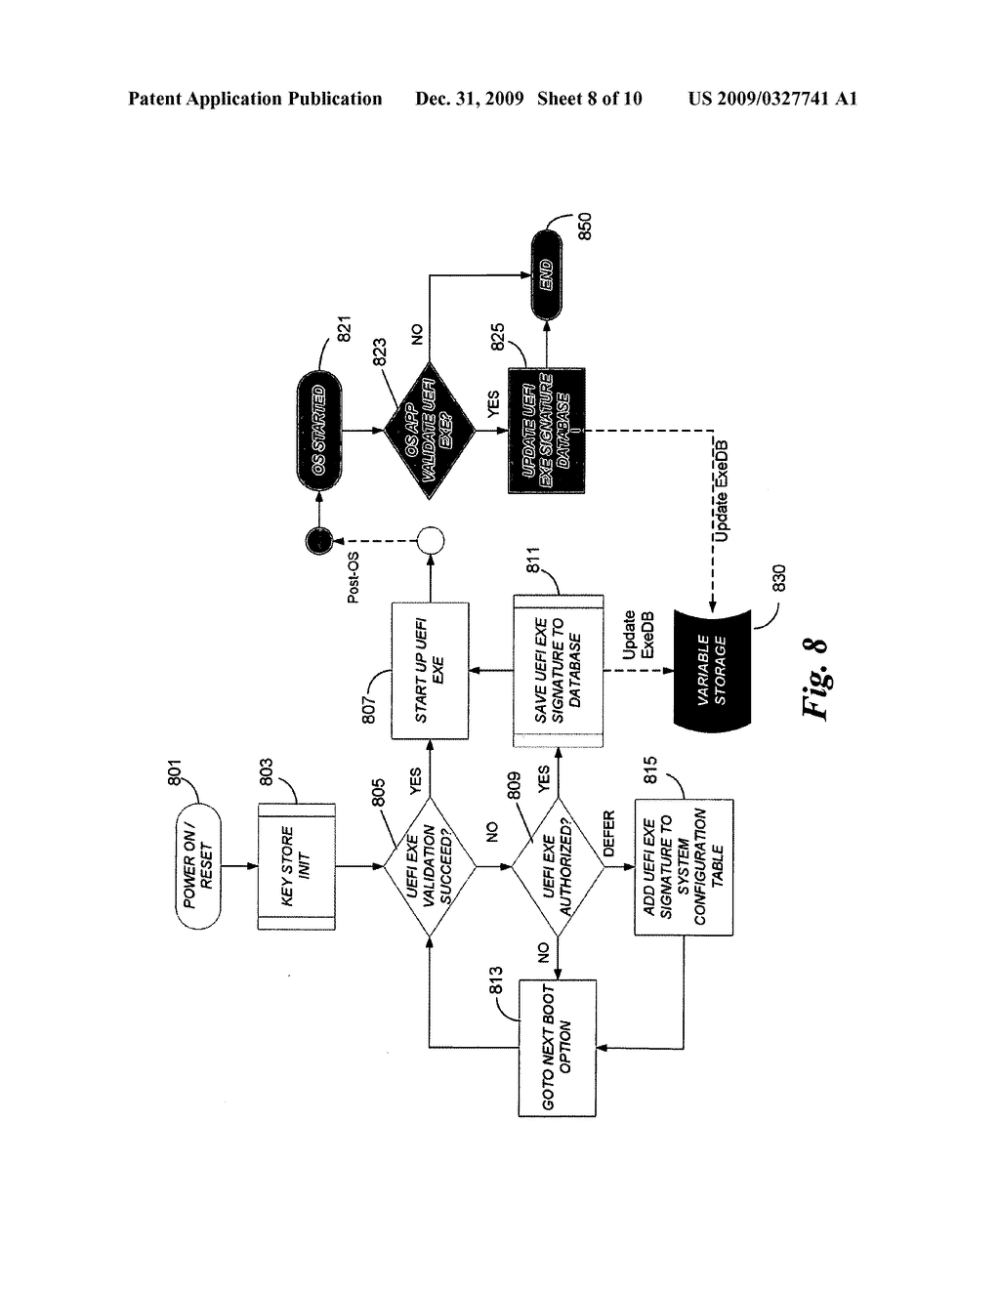 medium resolution of system and method to secure boot uefi firmware and uefi aware operating systems on a mobile internet device mid diagram schematic and image 09